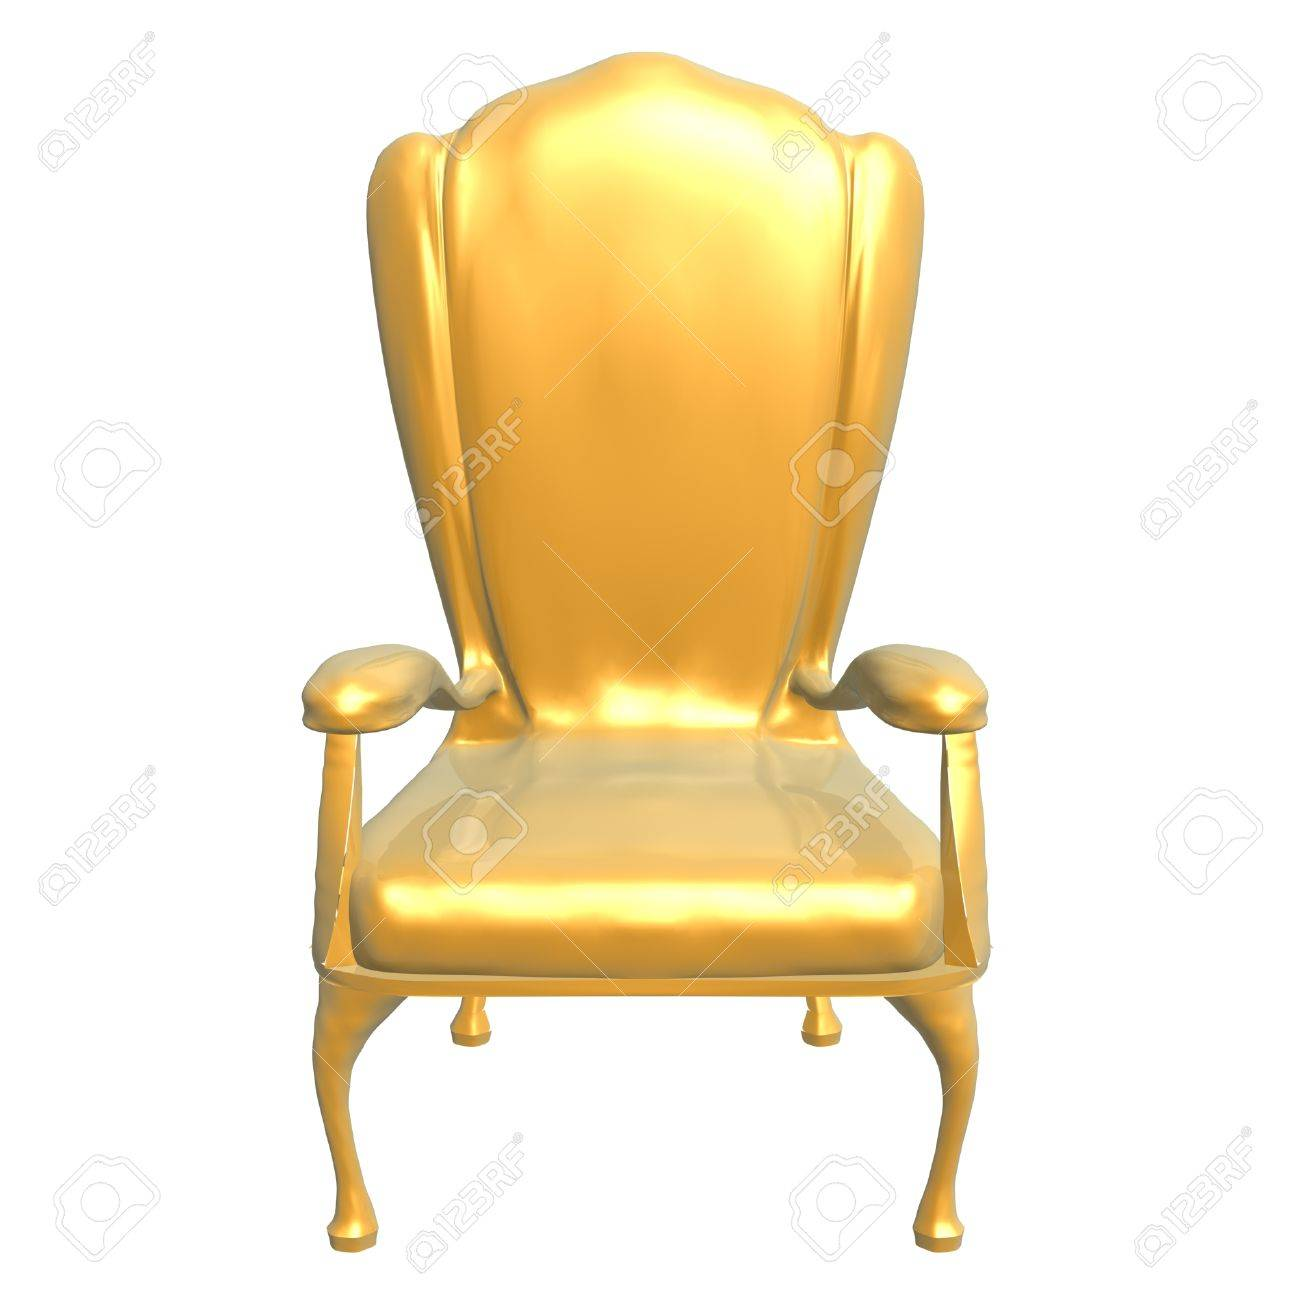 Merveilleux Golden Chair Of King Isolated On White Background Stock Photo   1406120